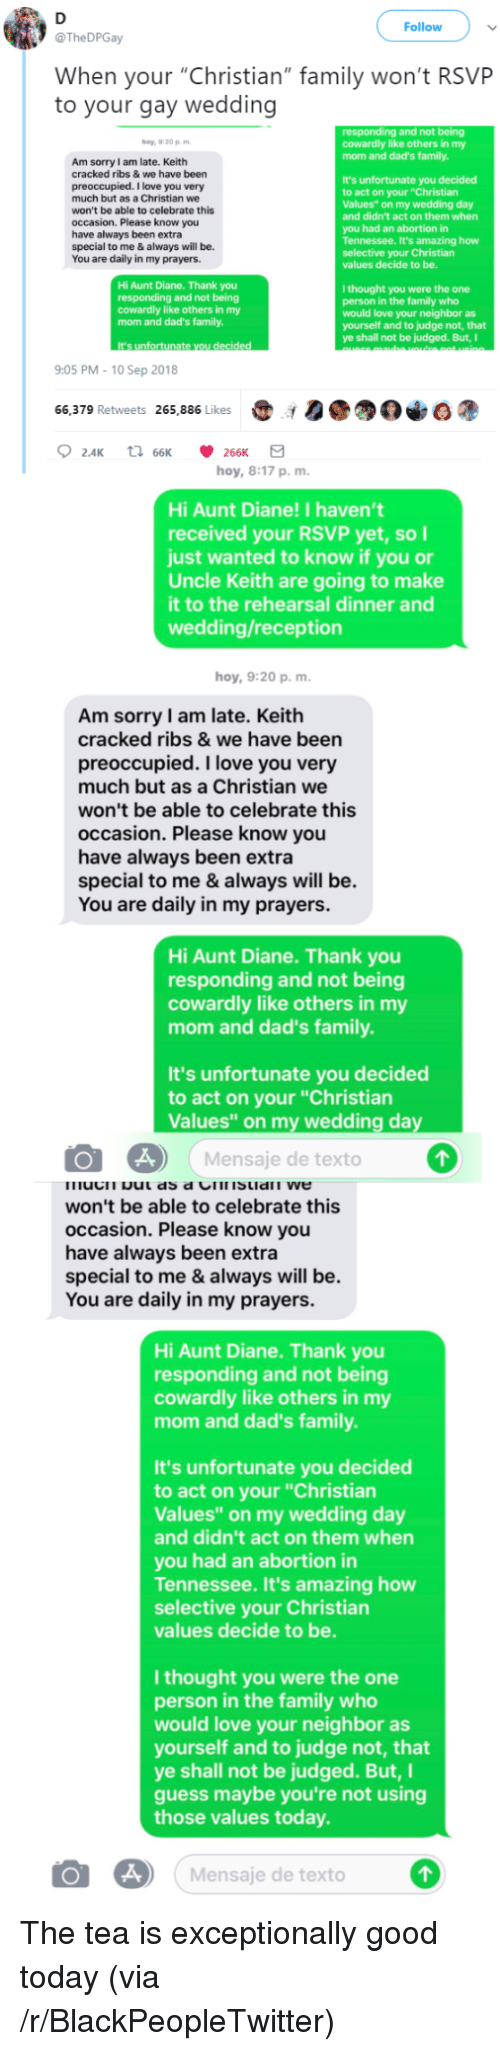 """exceptionally: Follow  @TheDPGay  When your """"Christian"""" family won't RSVP  to your gay wedding  and not being  y,9:20 pm  cowardly like others in my  mom and dad's family  Am sorry I am late. Keith  cracked ribs & we have been  preoccupied. I love you very  much but as a Christian we  won't be able to celebrate this  occasion. Please know you  have always been extra  special to me & always will be.  You are daily in my prayers.  It's unfortunate you decided  to act on your """"Christian  Values"""" on my wedding day  and didn't act on them when  you had an abortion in  Tennessee. It's amazing how  selective your Christian  values decide to be.  Hi Aunt Diane. Thank you  responding and not being  cowardly like others in my  mom and dad's family.  I thought you were the one  person in the family who  would love your neighbor as  yourself and to judge not, that  ye shall not be judged. But,I  It's unfortunate  9:05 PM - 10 Sep 2018  66,379 Retweets 265,886 Likes00  hoy, 8:17 p, m.  Hi Aunt Diane! I haven't  received your RSVP yet, soI  just wanted to know if you or  Uncle Keith are going to make  it to the rehearsal dinner and  wedding/reception  hoy, 9:20 p, m  Am sorry I am late. Keith  cracked ribs & we have been  preoccupied. I love you very  much but as a Christian we  won't be able to celebrate this  occasion. Please know you  have always been extra  special to me & always will be.  You are daily in my prayers  Hi Aunt Diane. Thank you  responding and not being  cowardly like others in my  mom and dad's family.  It's unfortunate you decided  to act on your """"Christian  Values"""" on my wedding day  Mensaje de texto  won't be able to celebrate this  occasion. Please know you  have always been extra  special to me & always will be.  You are daily in my prayers.  Hi Aunt Diane. Thank you  responding and not being  cowardly like others in my  mom and dad's family.  It's unfortunate you decided  to act on your """"Christian  Values"""" on my wedding day  and didn't act on them when  """